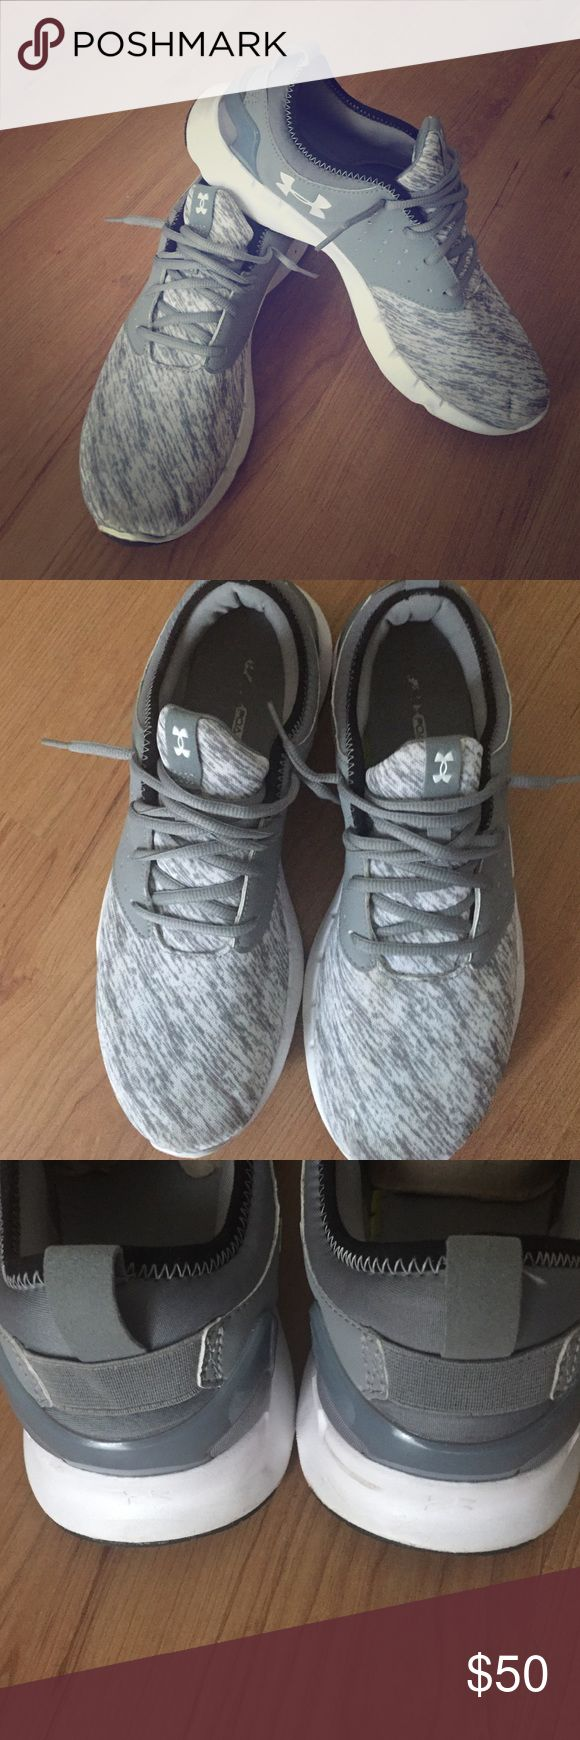 Men's Under Armour Tennis Shoes Grey and white UA shoes. Worn maybe 5 times! Under Armour Shoes Athletic Shoes